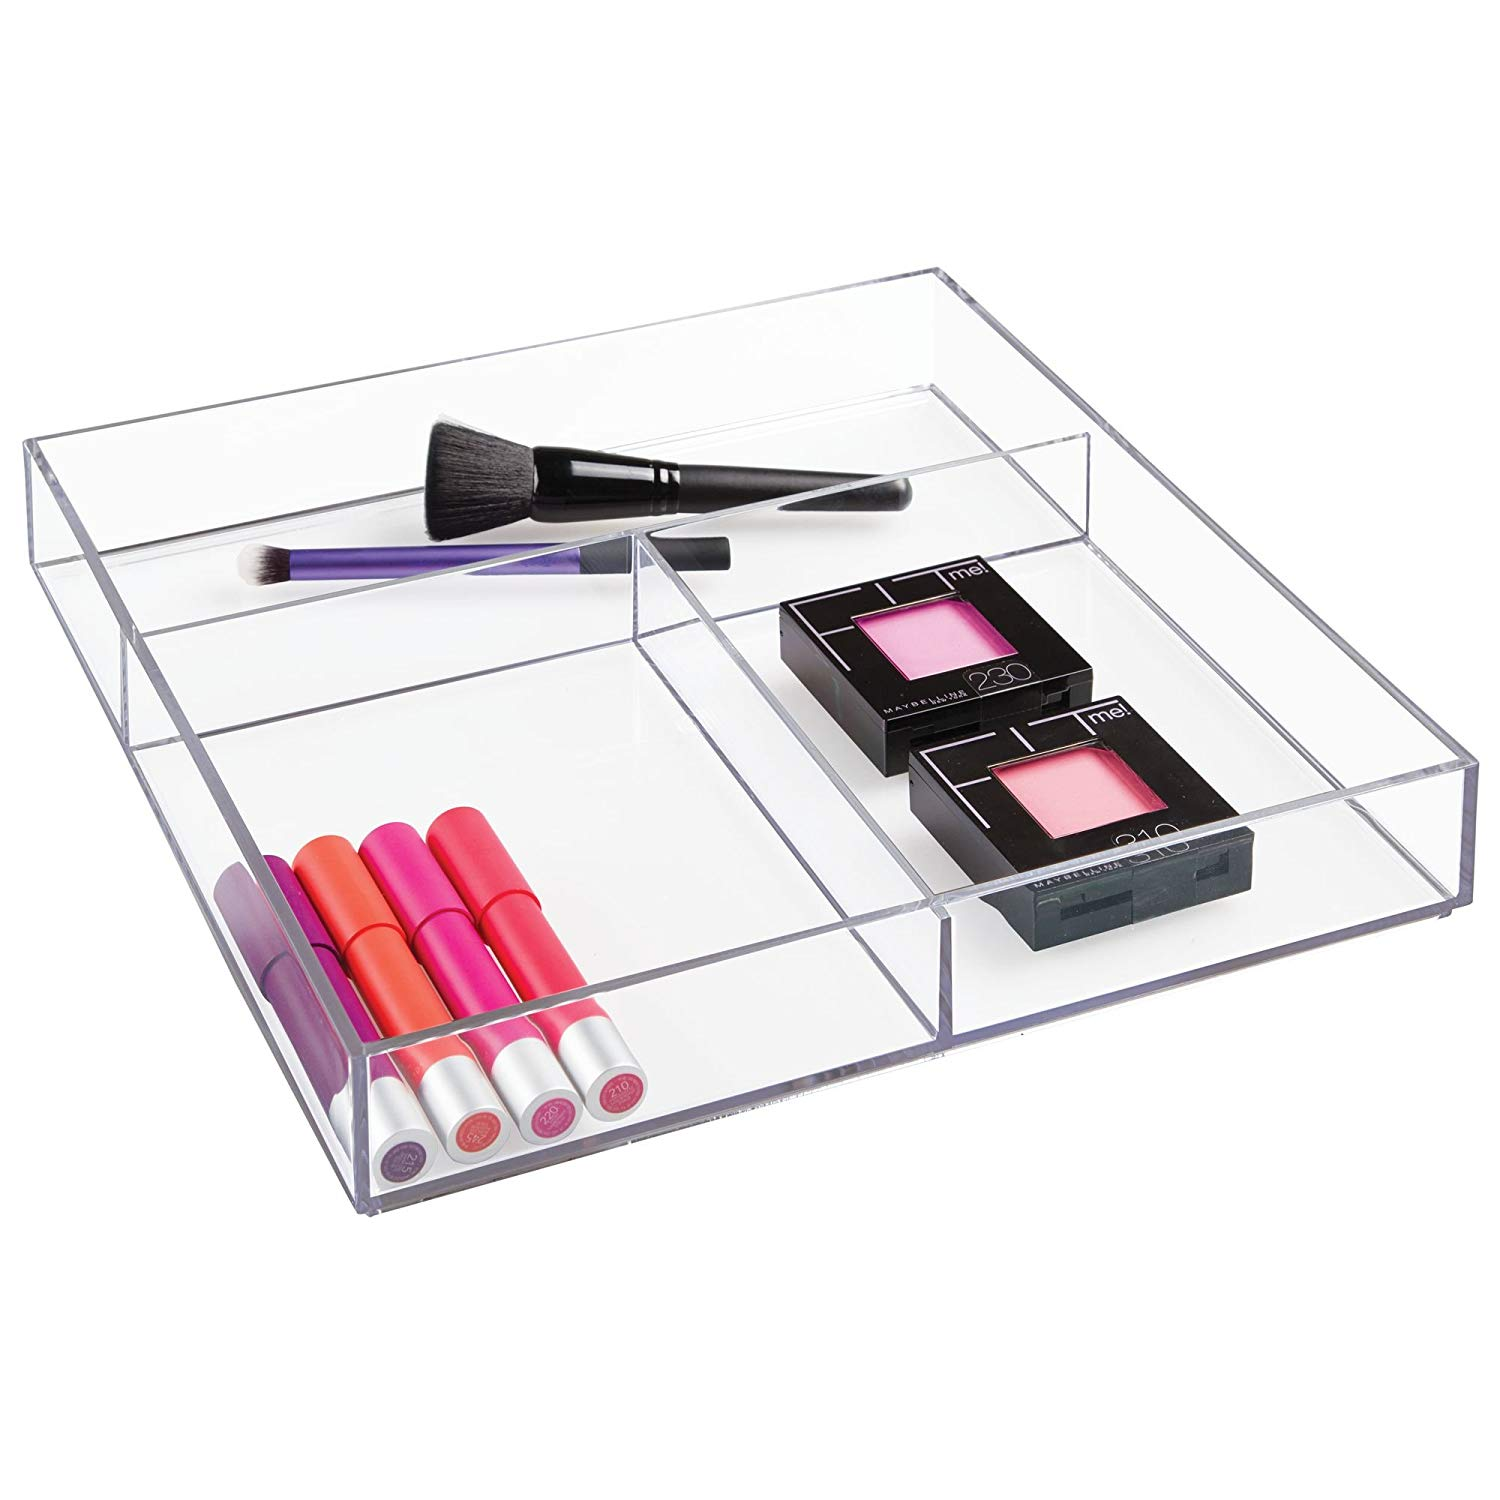 12 Inch x 12 Inch Clarity Drawer Organizer